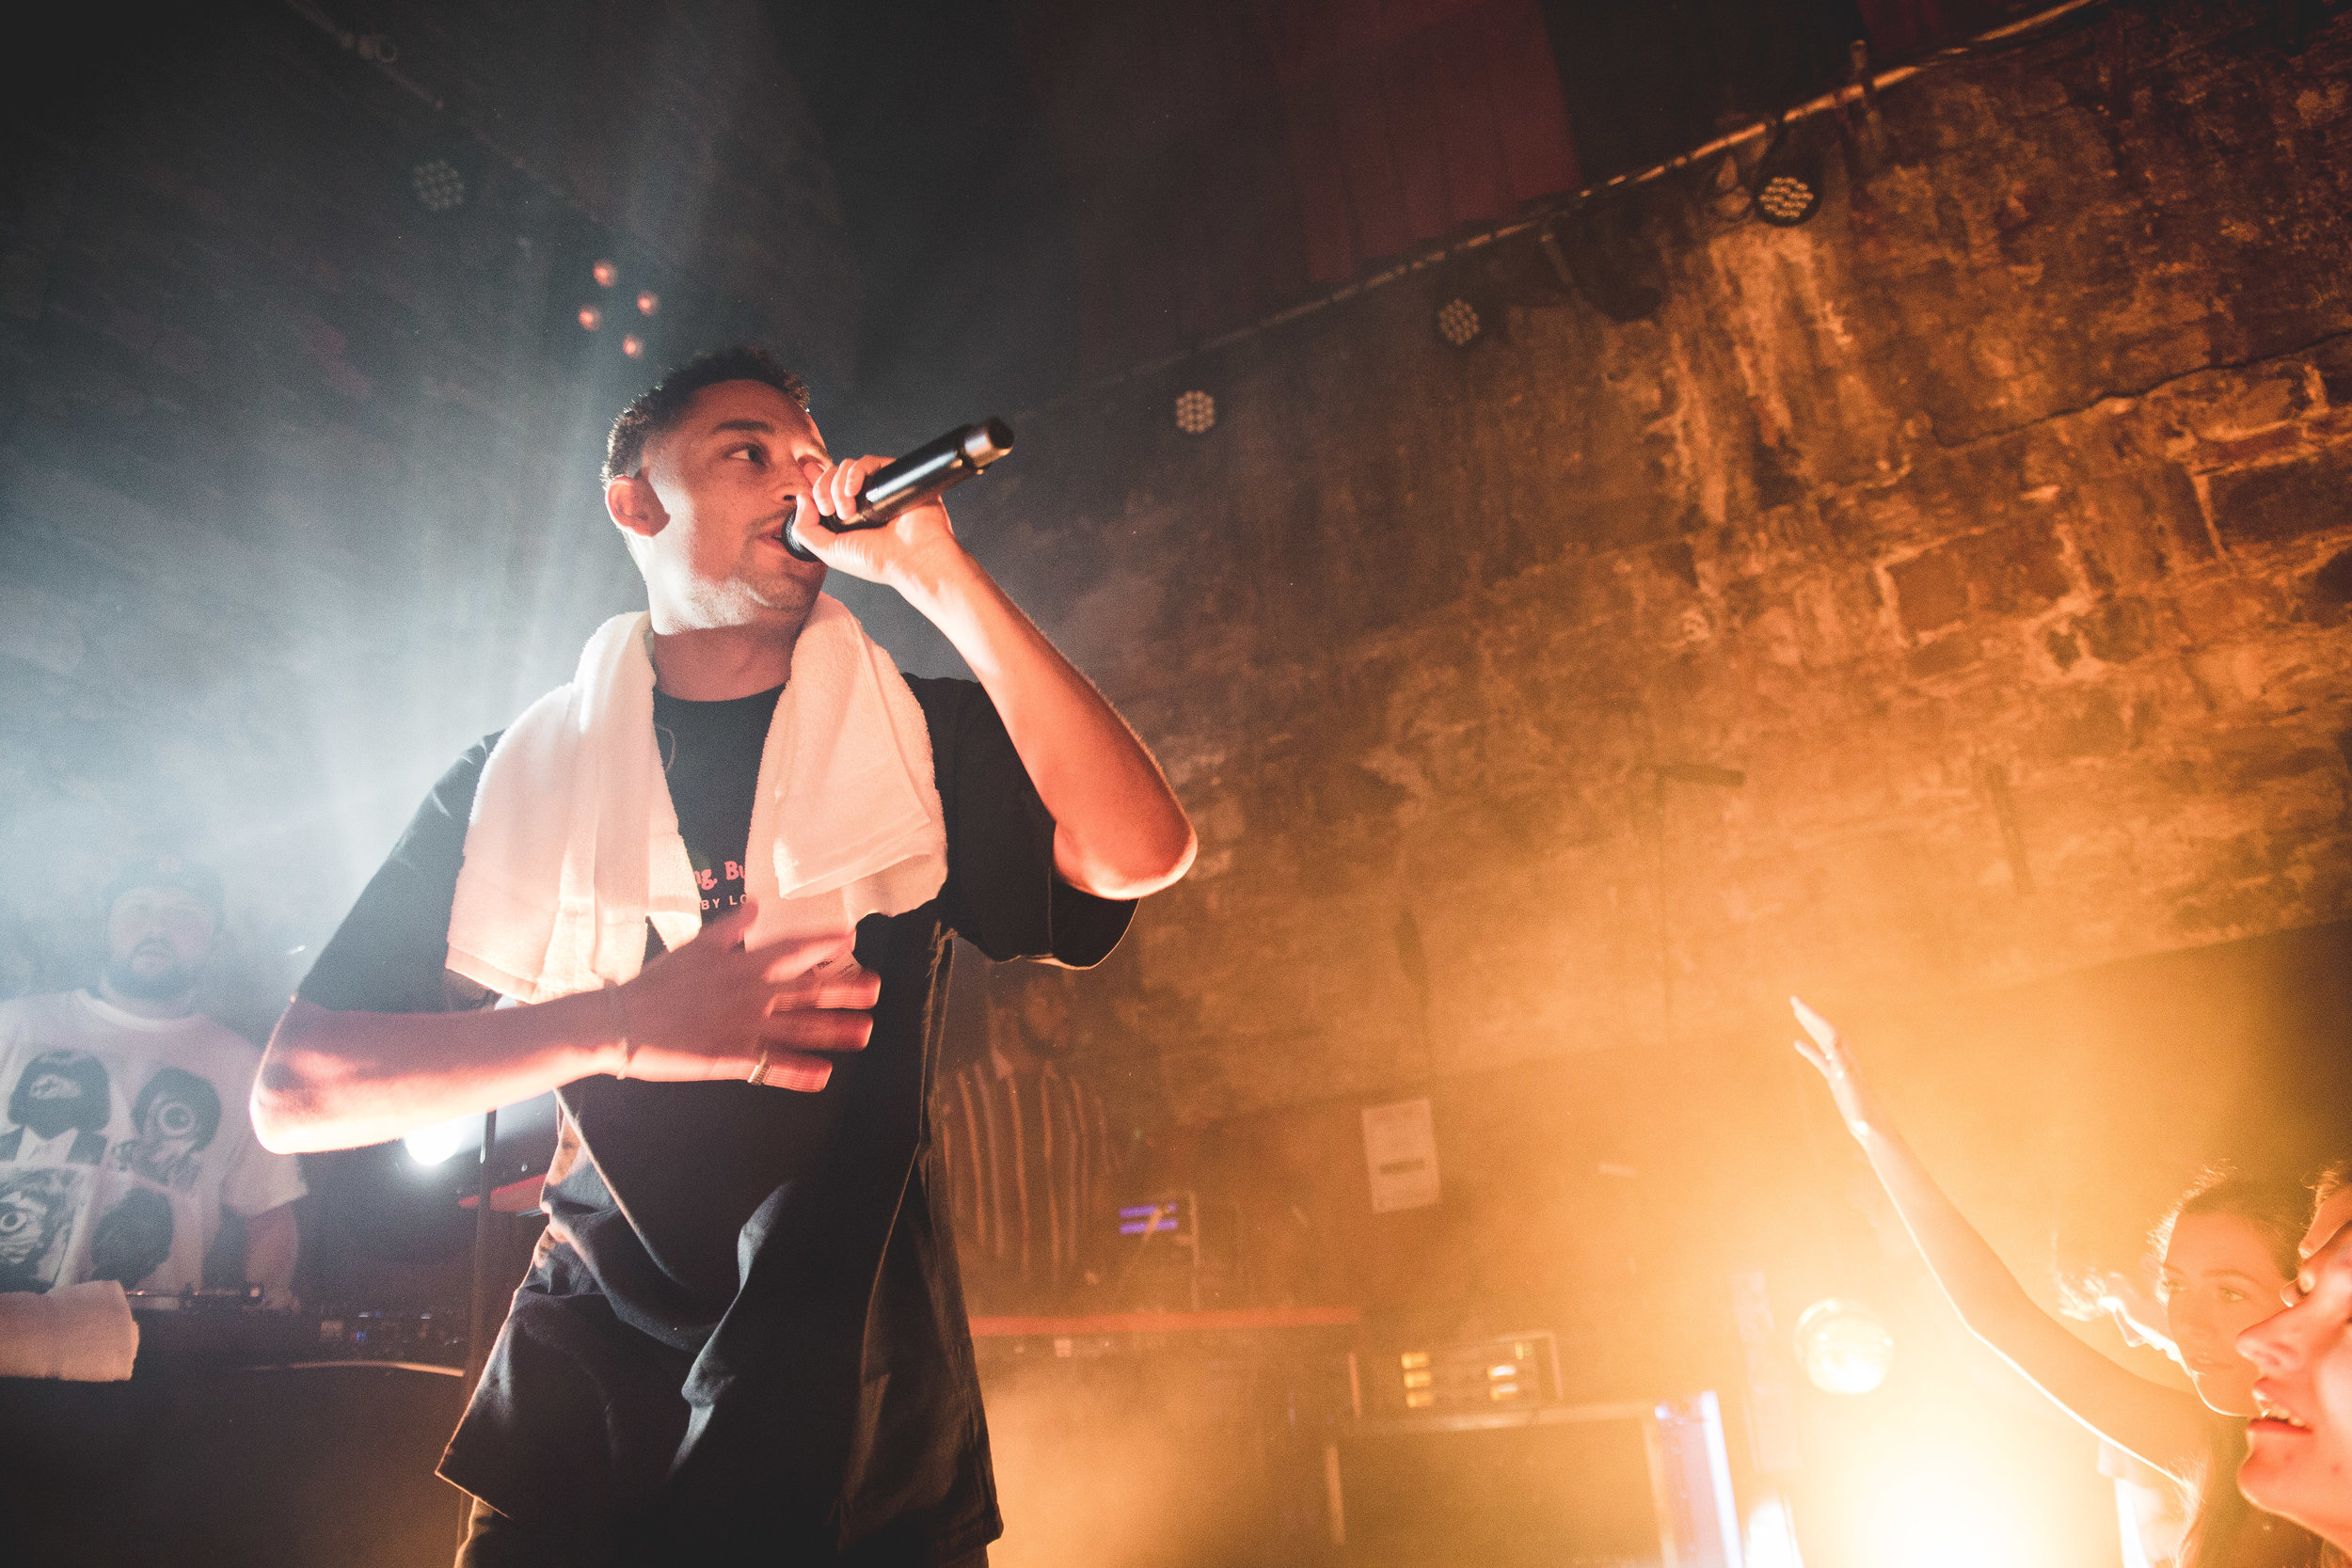 LOYLE CARNER PERFORMING AT EDINBURGH'S CAVES - 28.04.2019  PICTURE BY: FINDLAY MACDONALD PHOTOGRAPHY